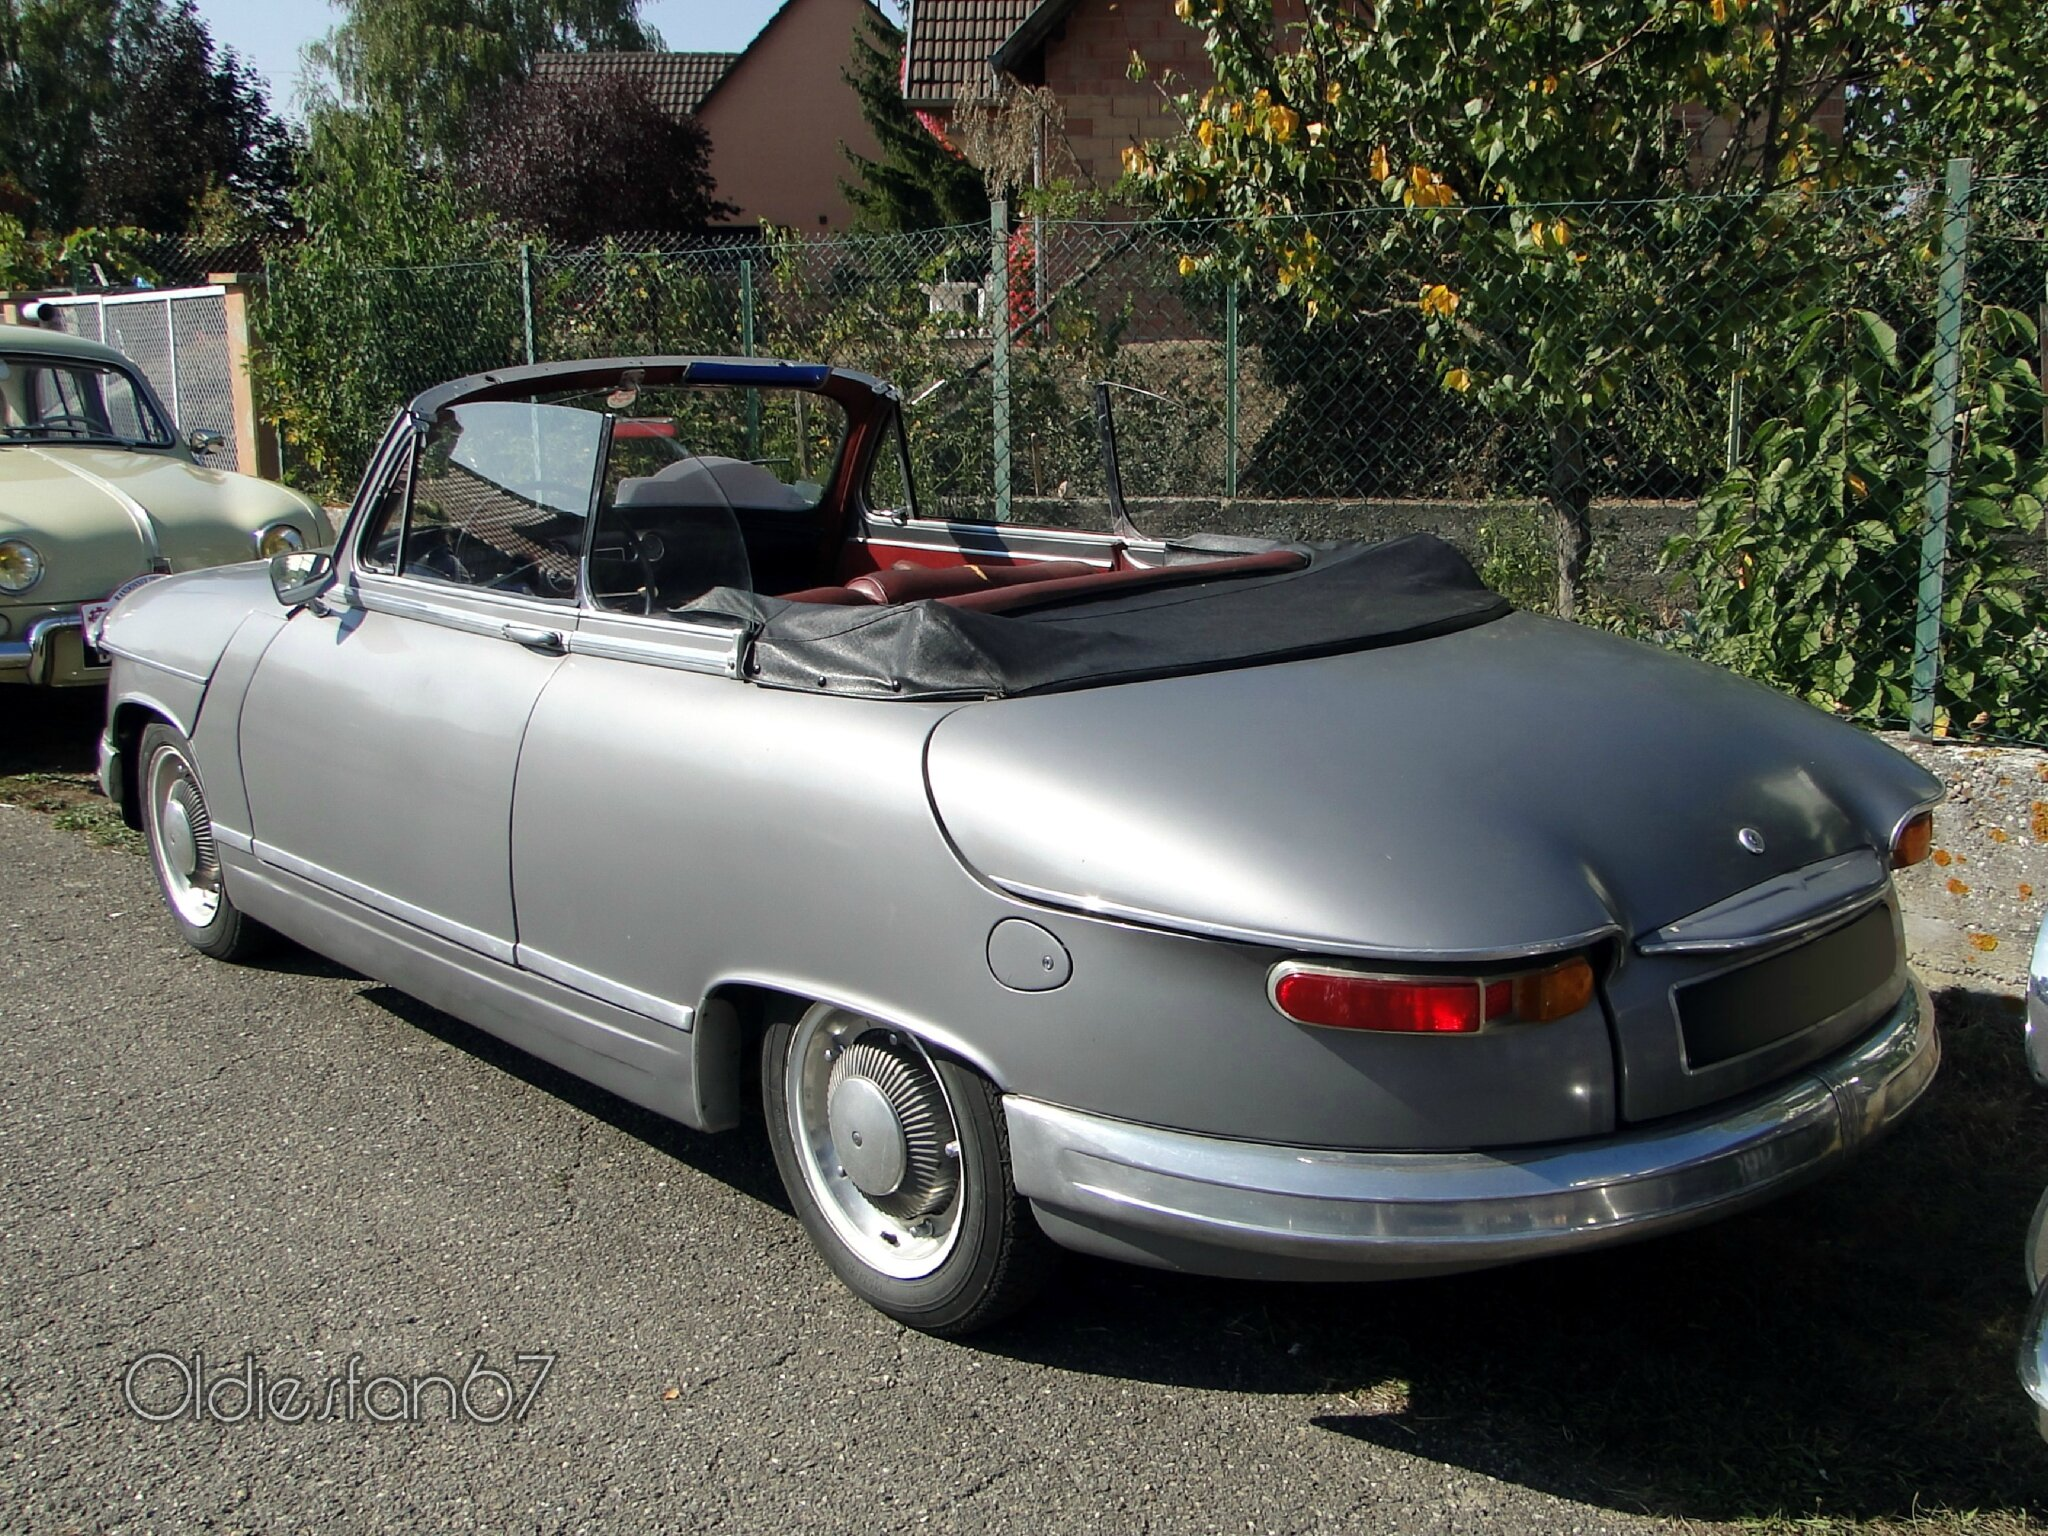 panhard pl17 cabriolet 1963 oldiesfan67 mon blog auto. Black Bedroom Furniture Sets. Home Design Ideas